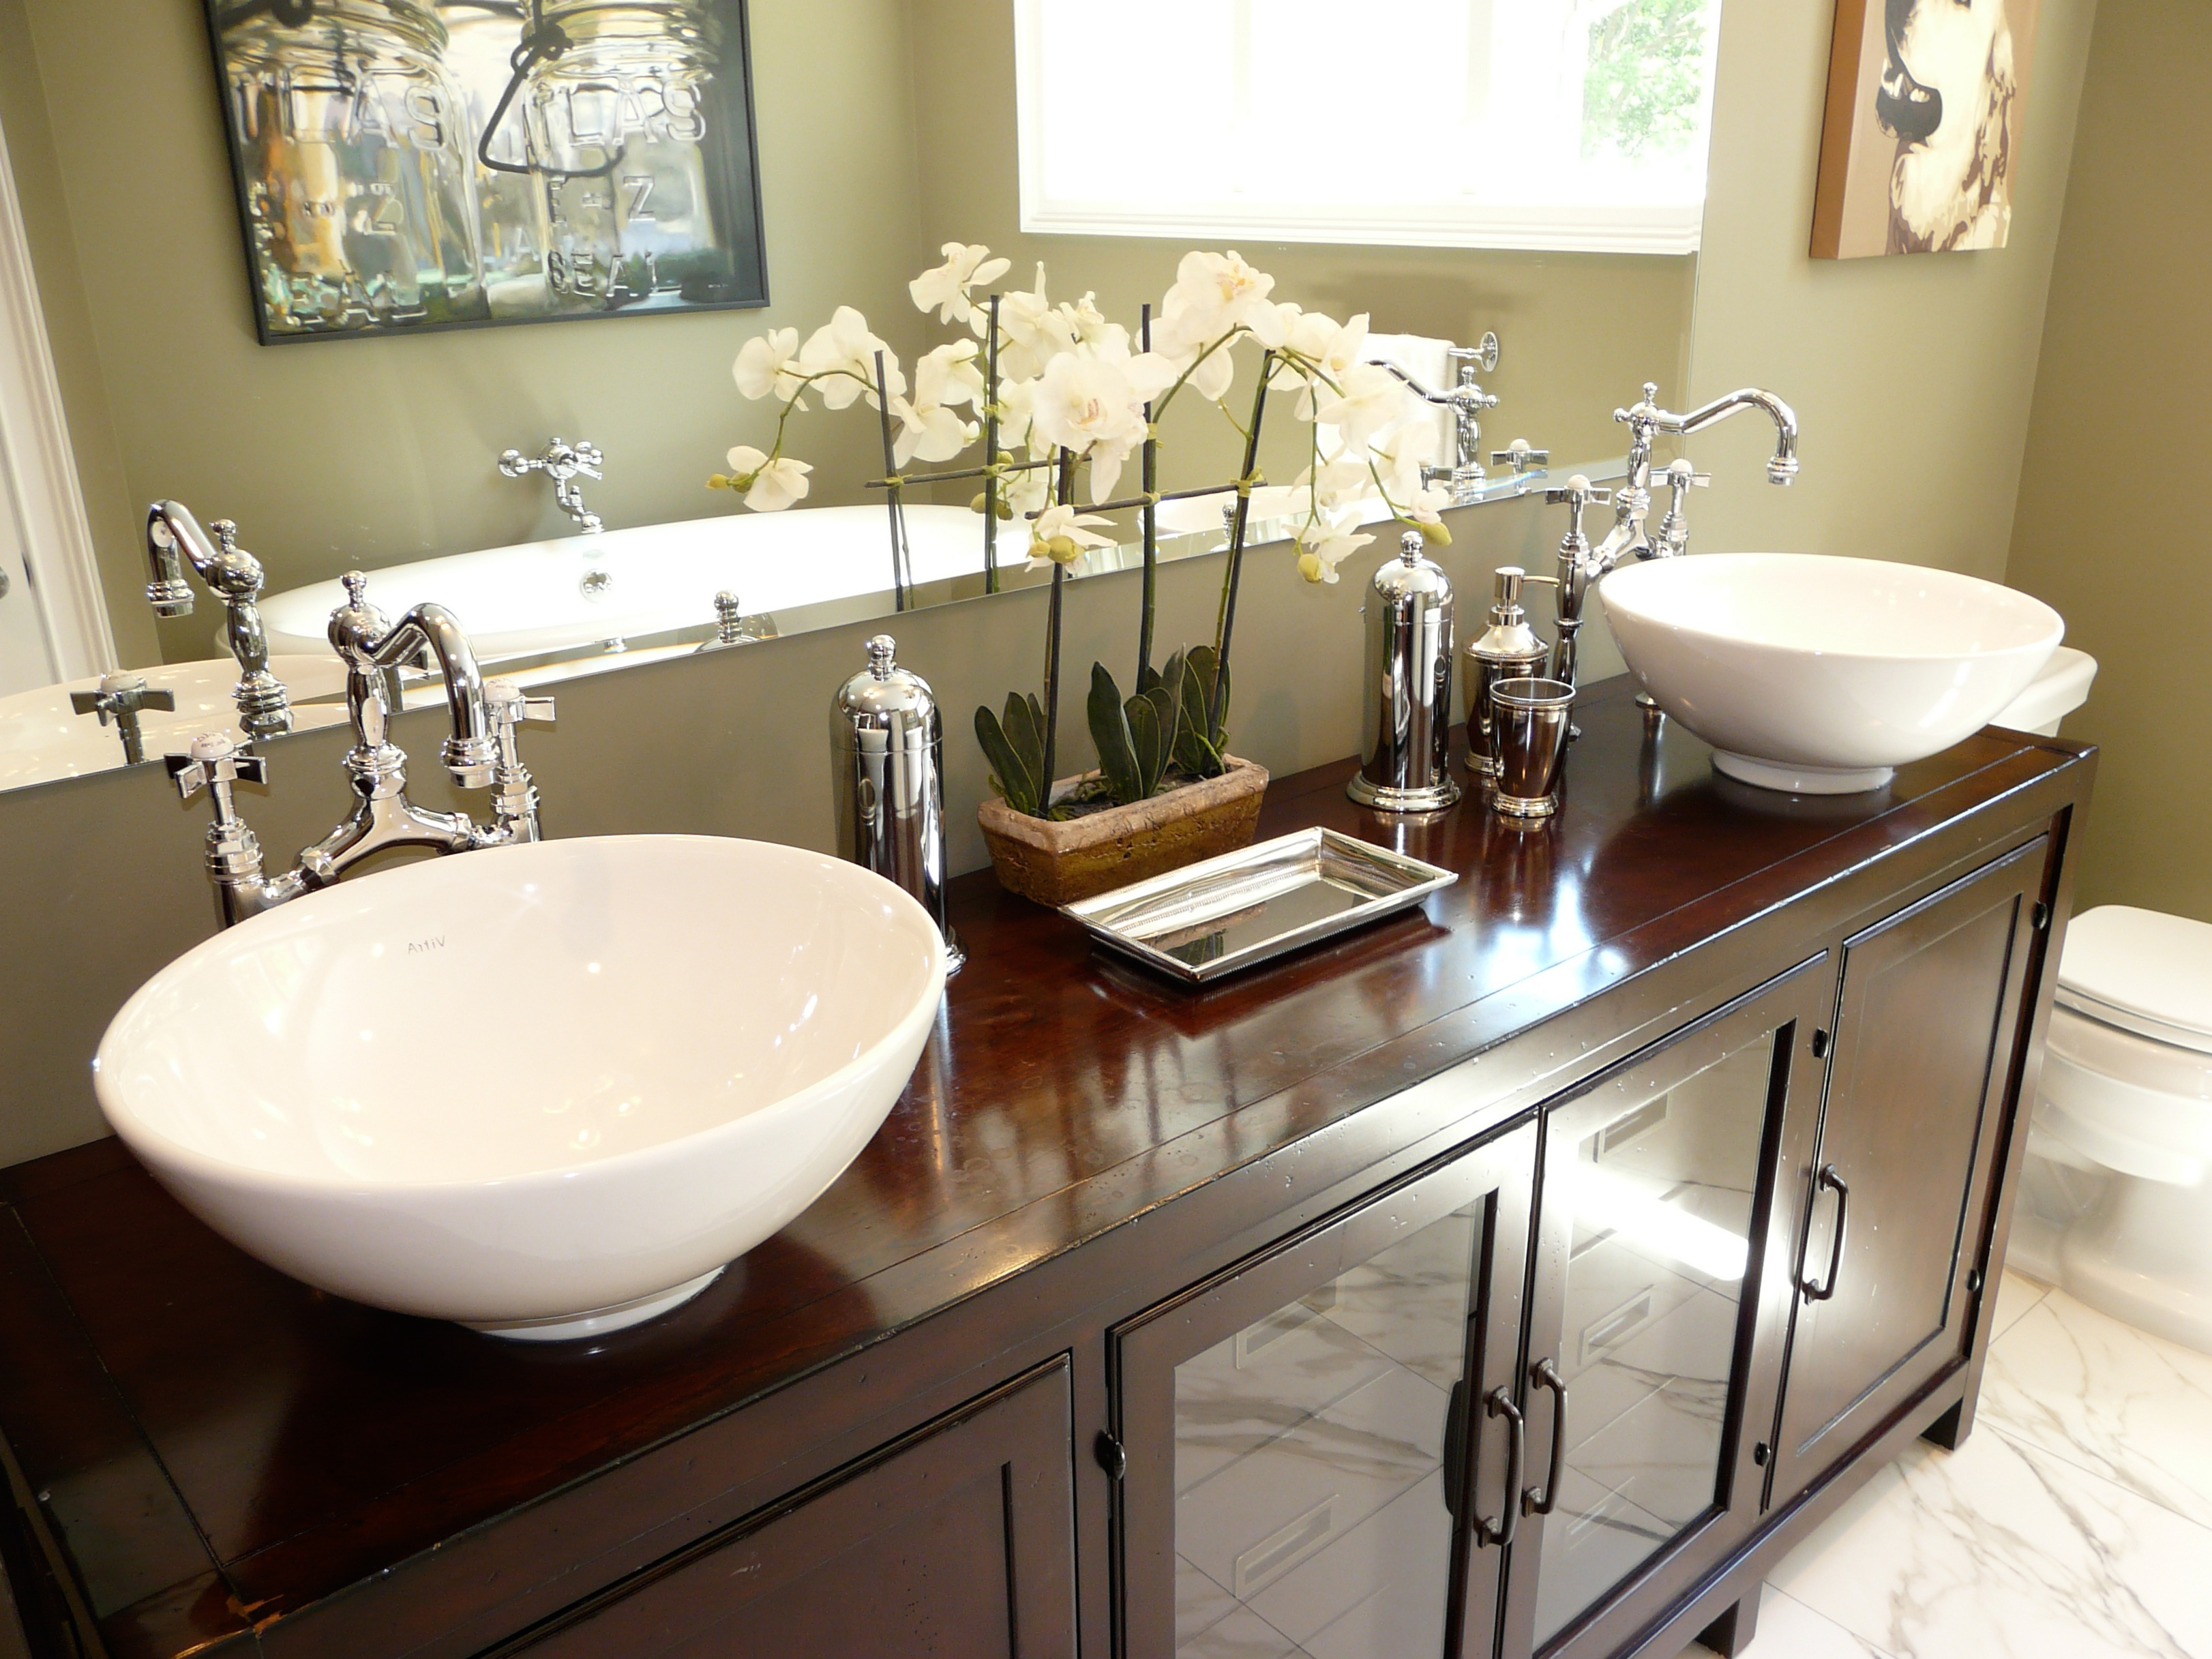 Modern Sophisticated Bathroom Accessories And Flowers (View 11 of 14)